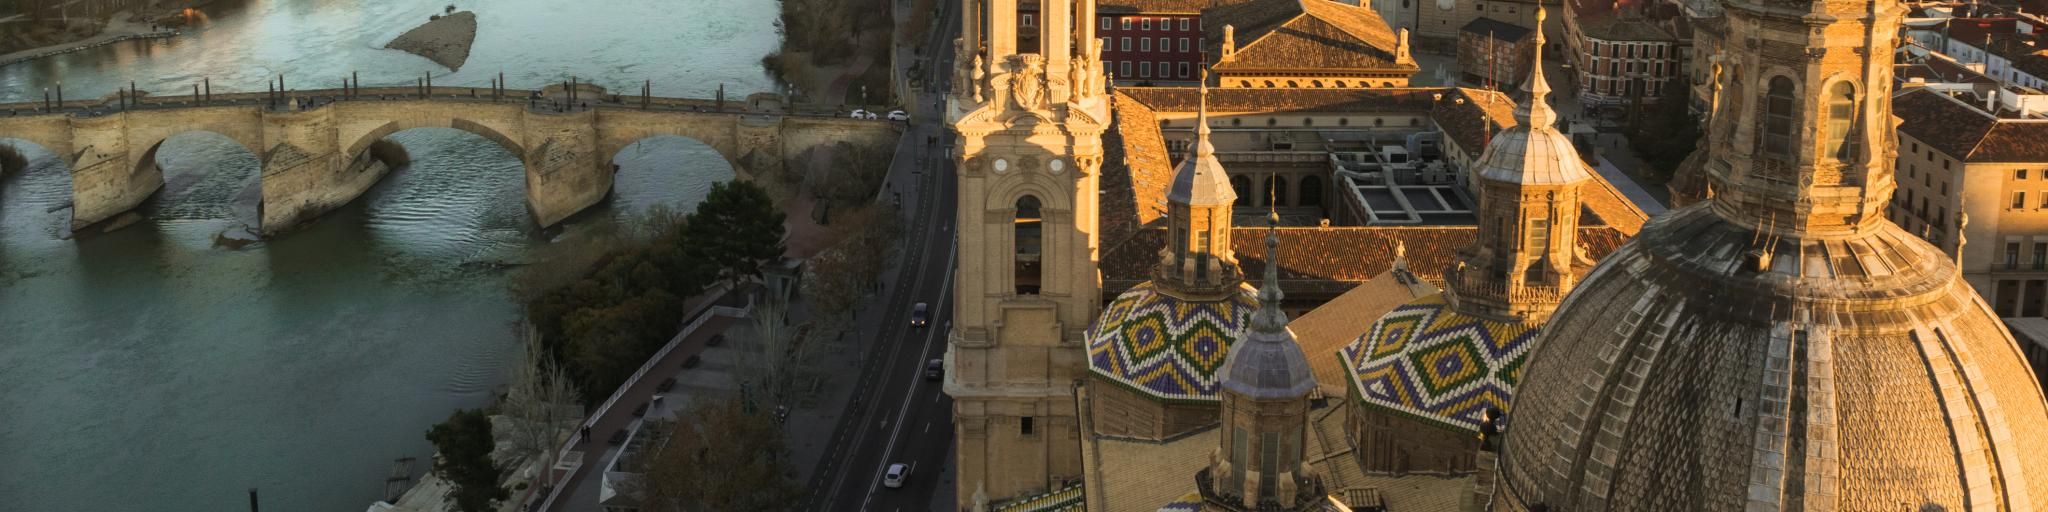 A bird's eye view of Zaragoza, Spain, and the turrets of Cathedral Basilica of Our Lady of the Pillar